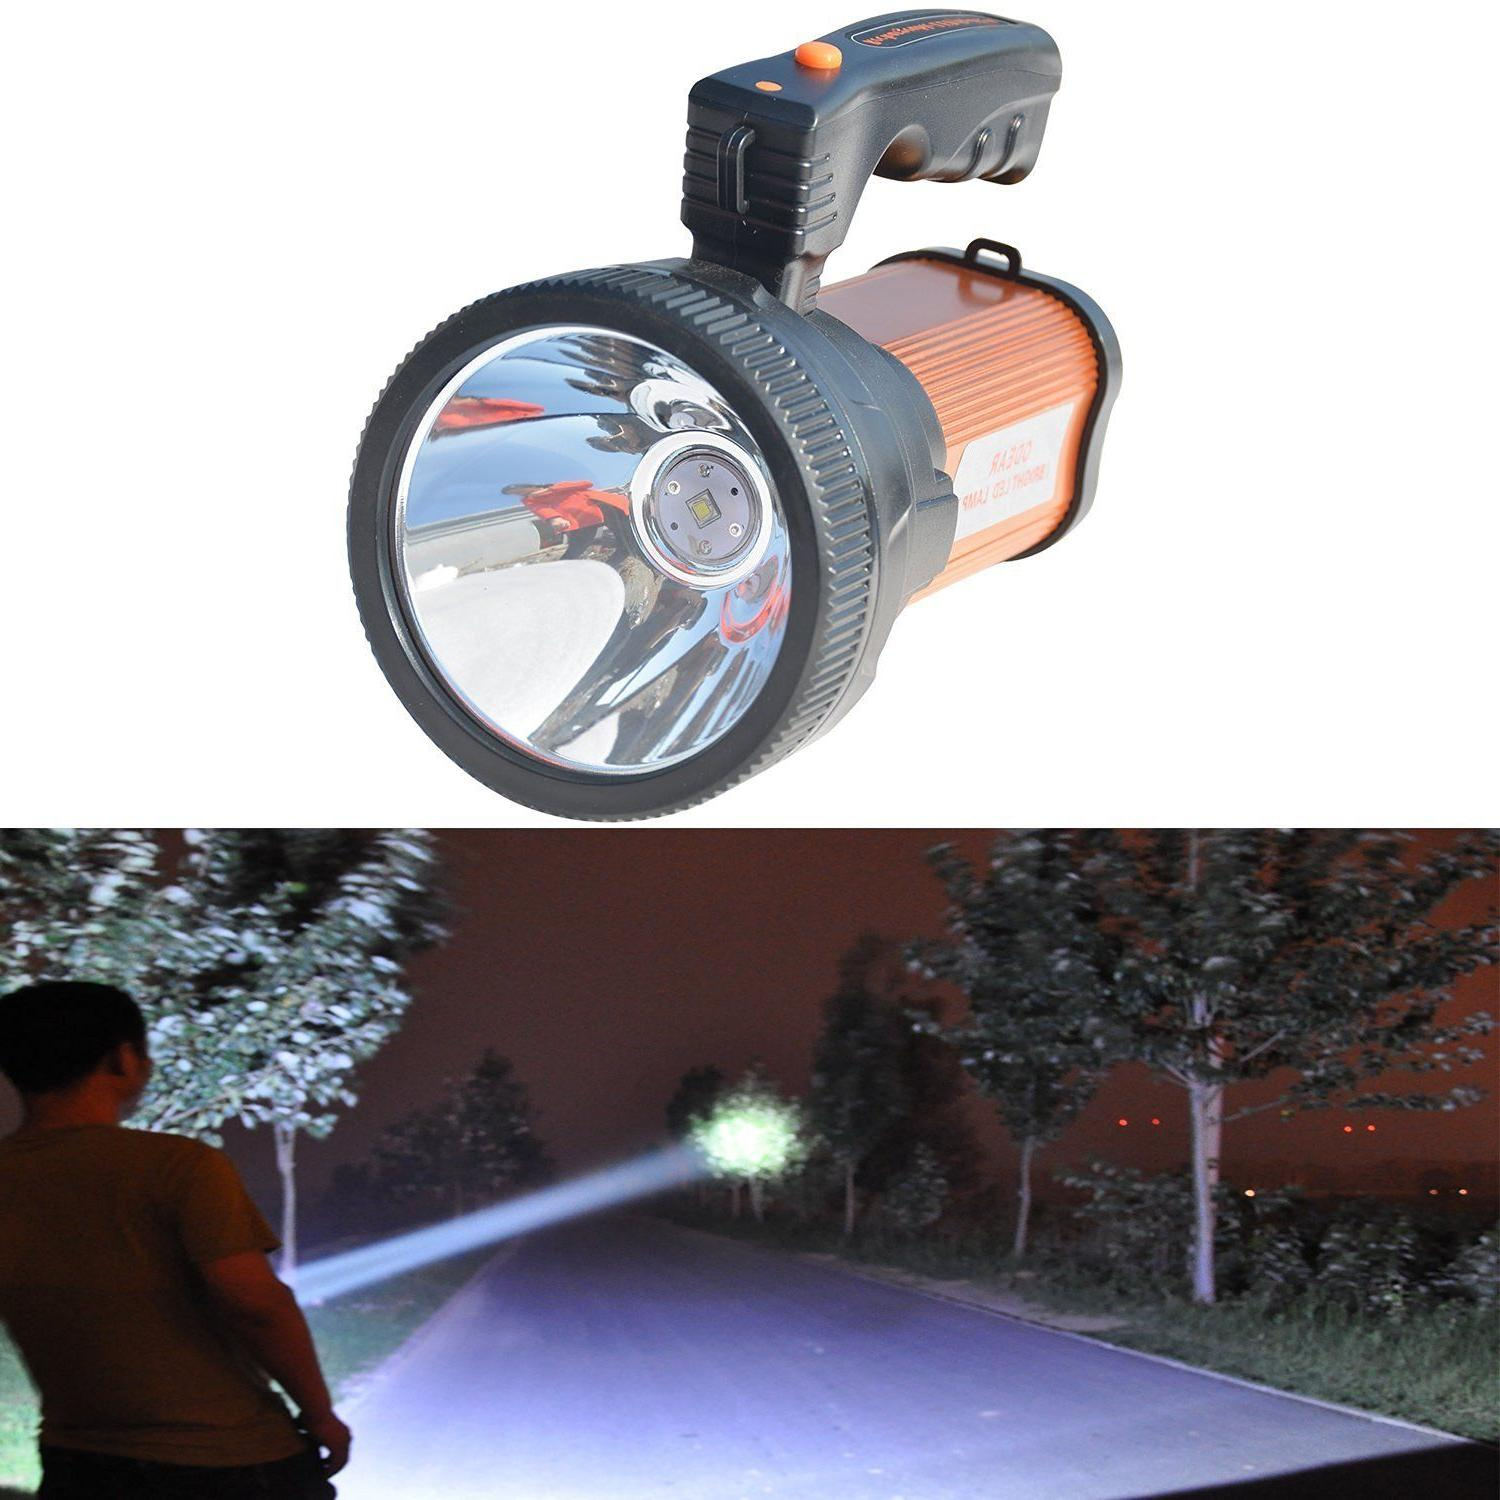 super bright searchlight handheld portable spotlight flashlight